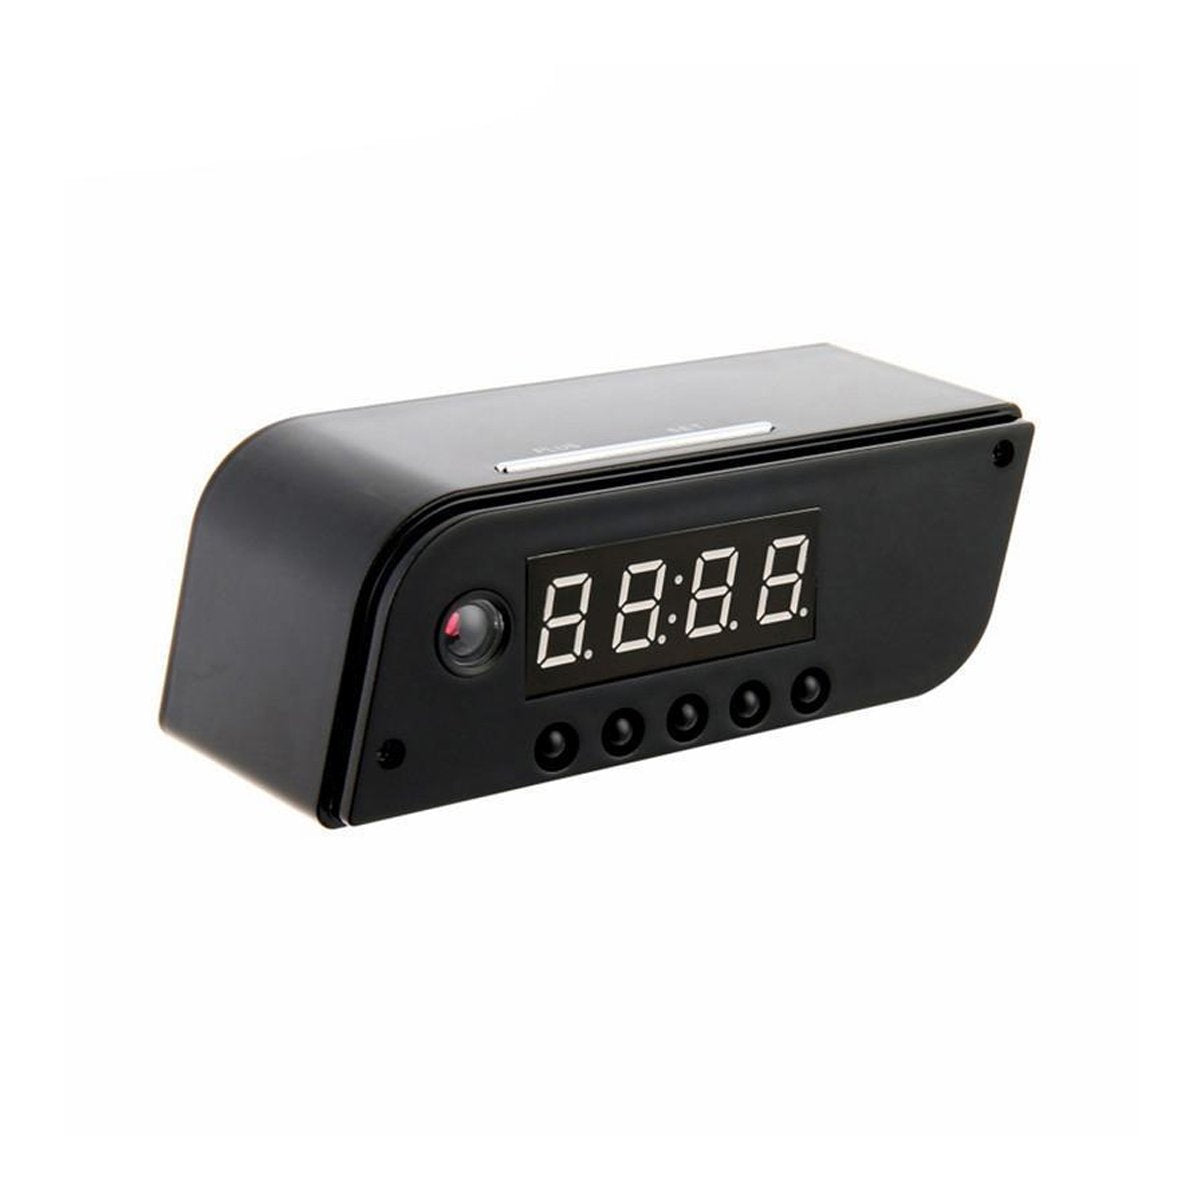 Hidden HD Camera Alarm Clock with Wi-Fi Connectivity & SD Card Slot